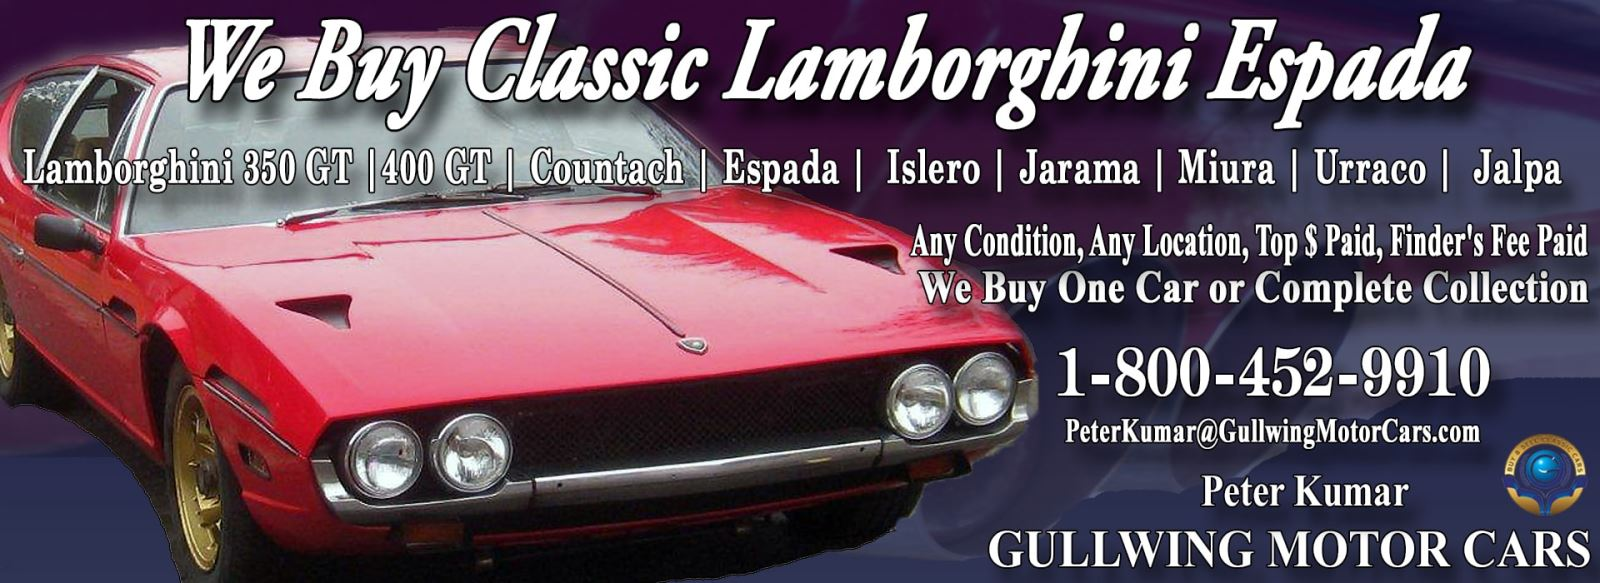 Classic Lamborghini Espada for sale, we buy vintage Lamborghini Espada. Call Peter Kumar. Gullwing Motor